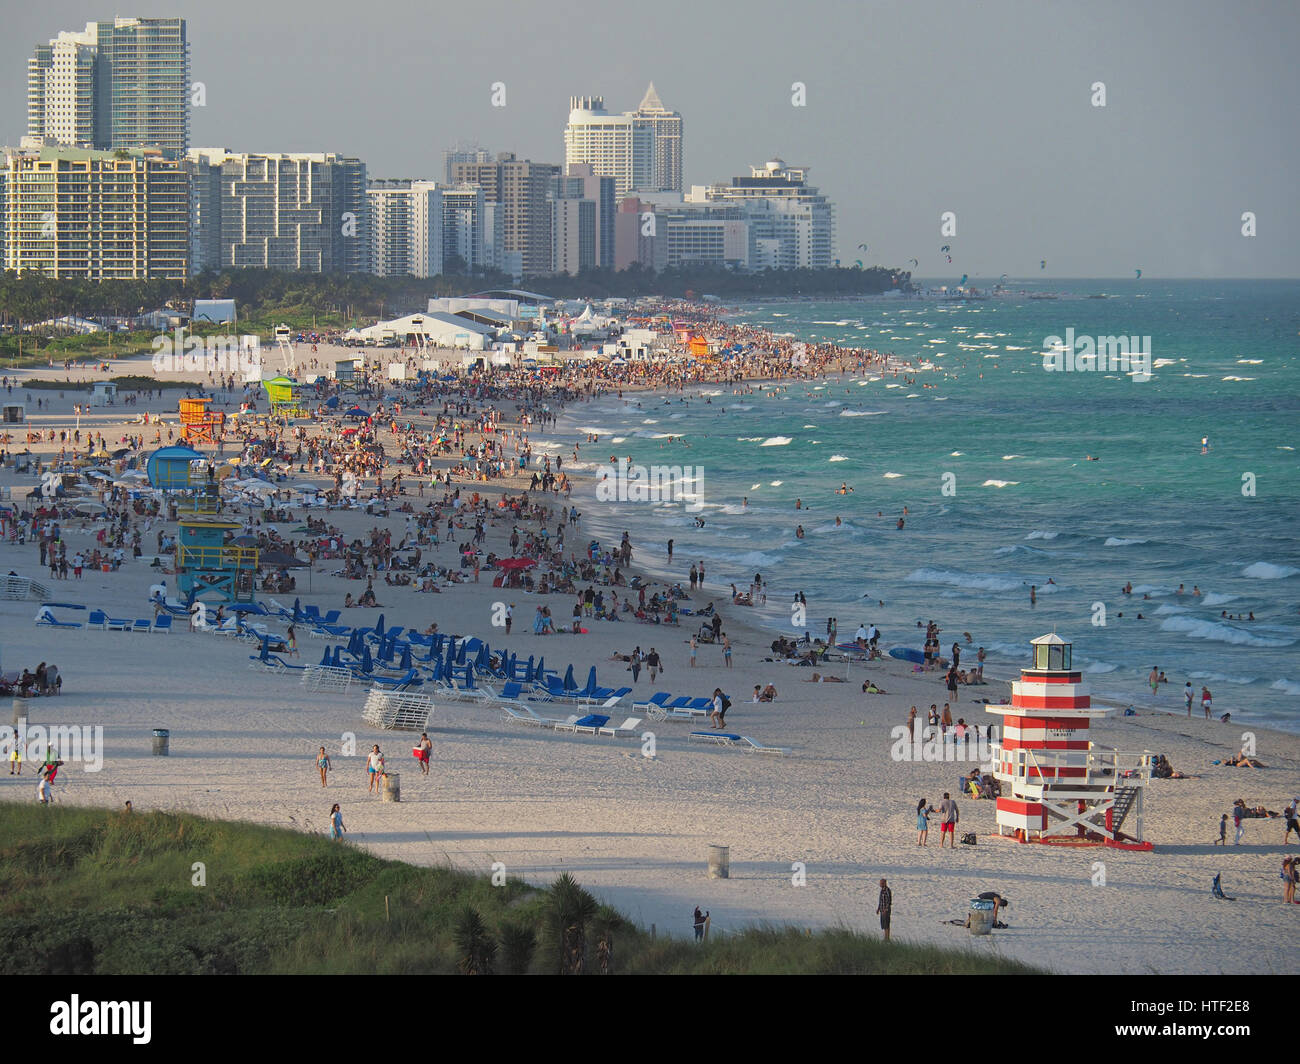 Crowded South Miami Beach on a Sunday in winter. - Stock Image